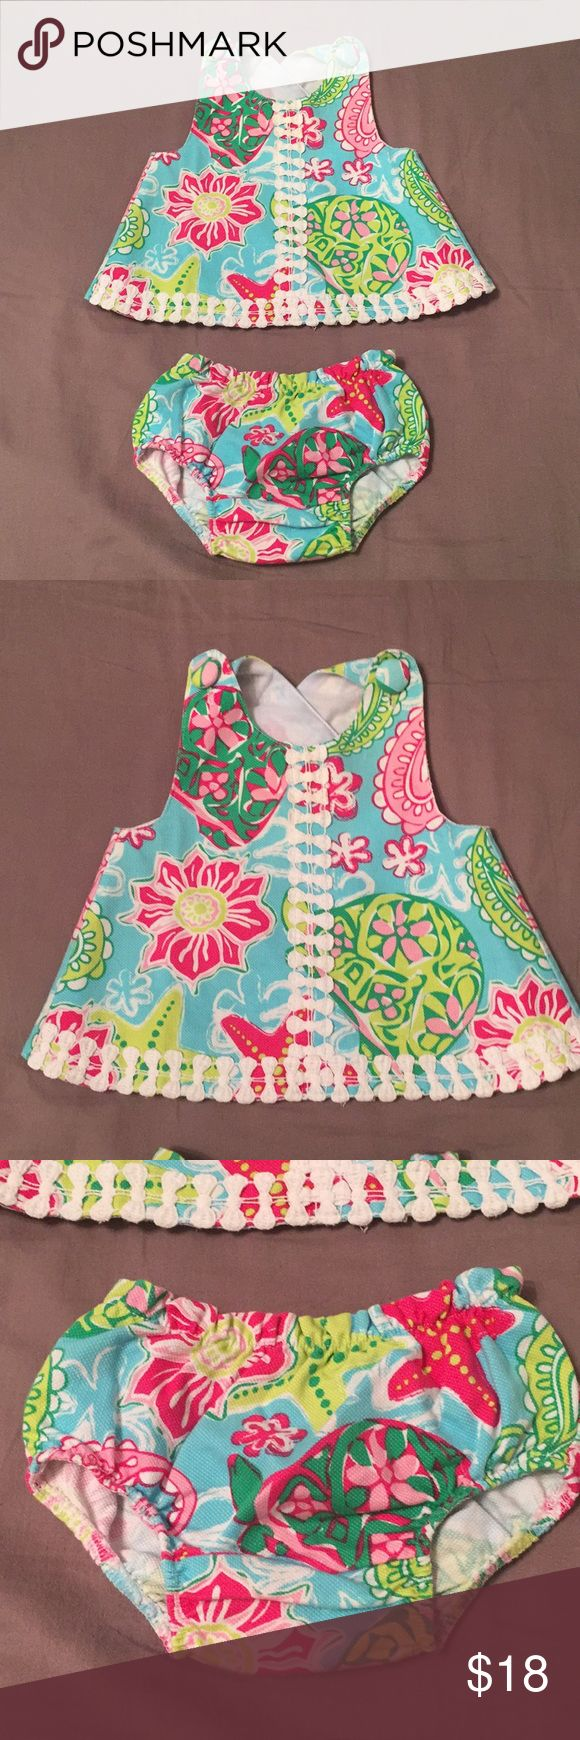 Adorable Mud Pie Outfit Size 9-12 months Adorable Mud Pie Outfit Size 9-12 months Mud Pie Matching Sets